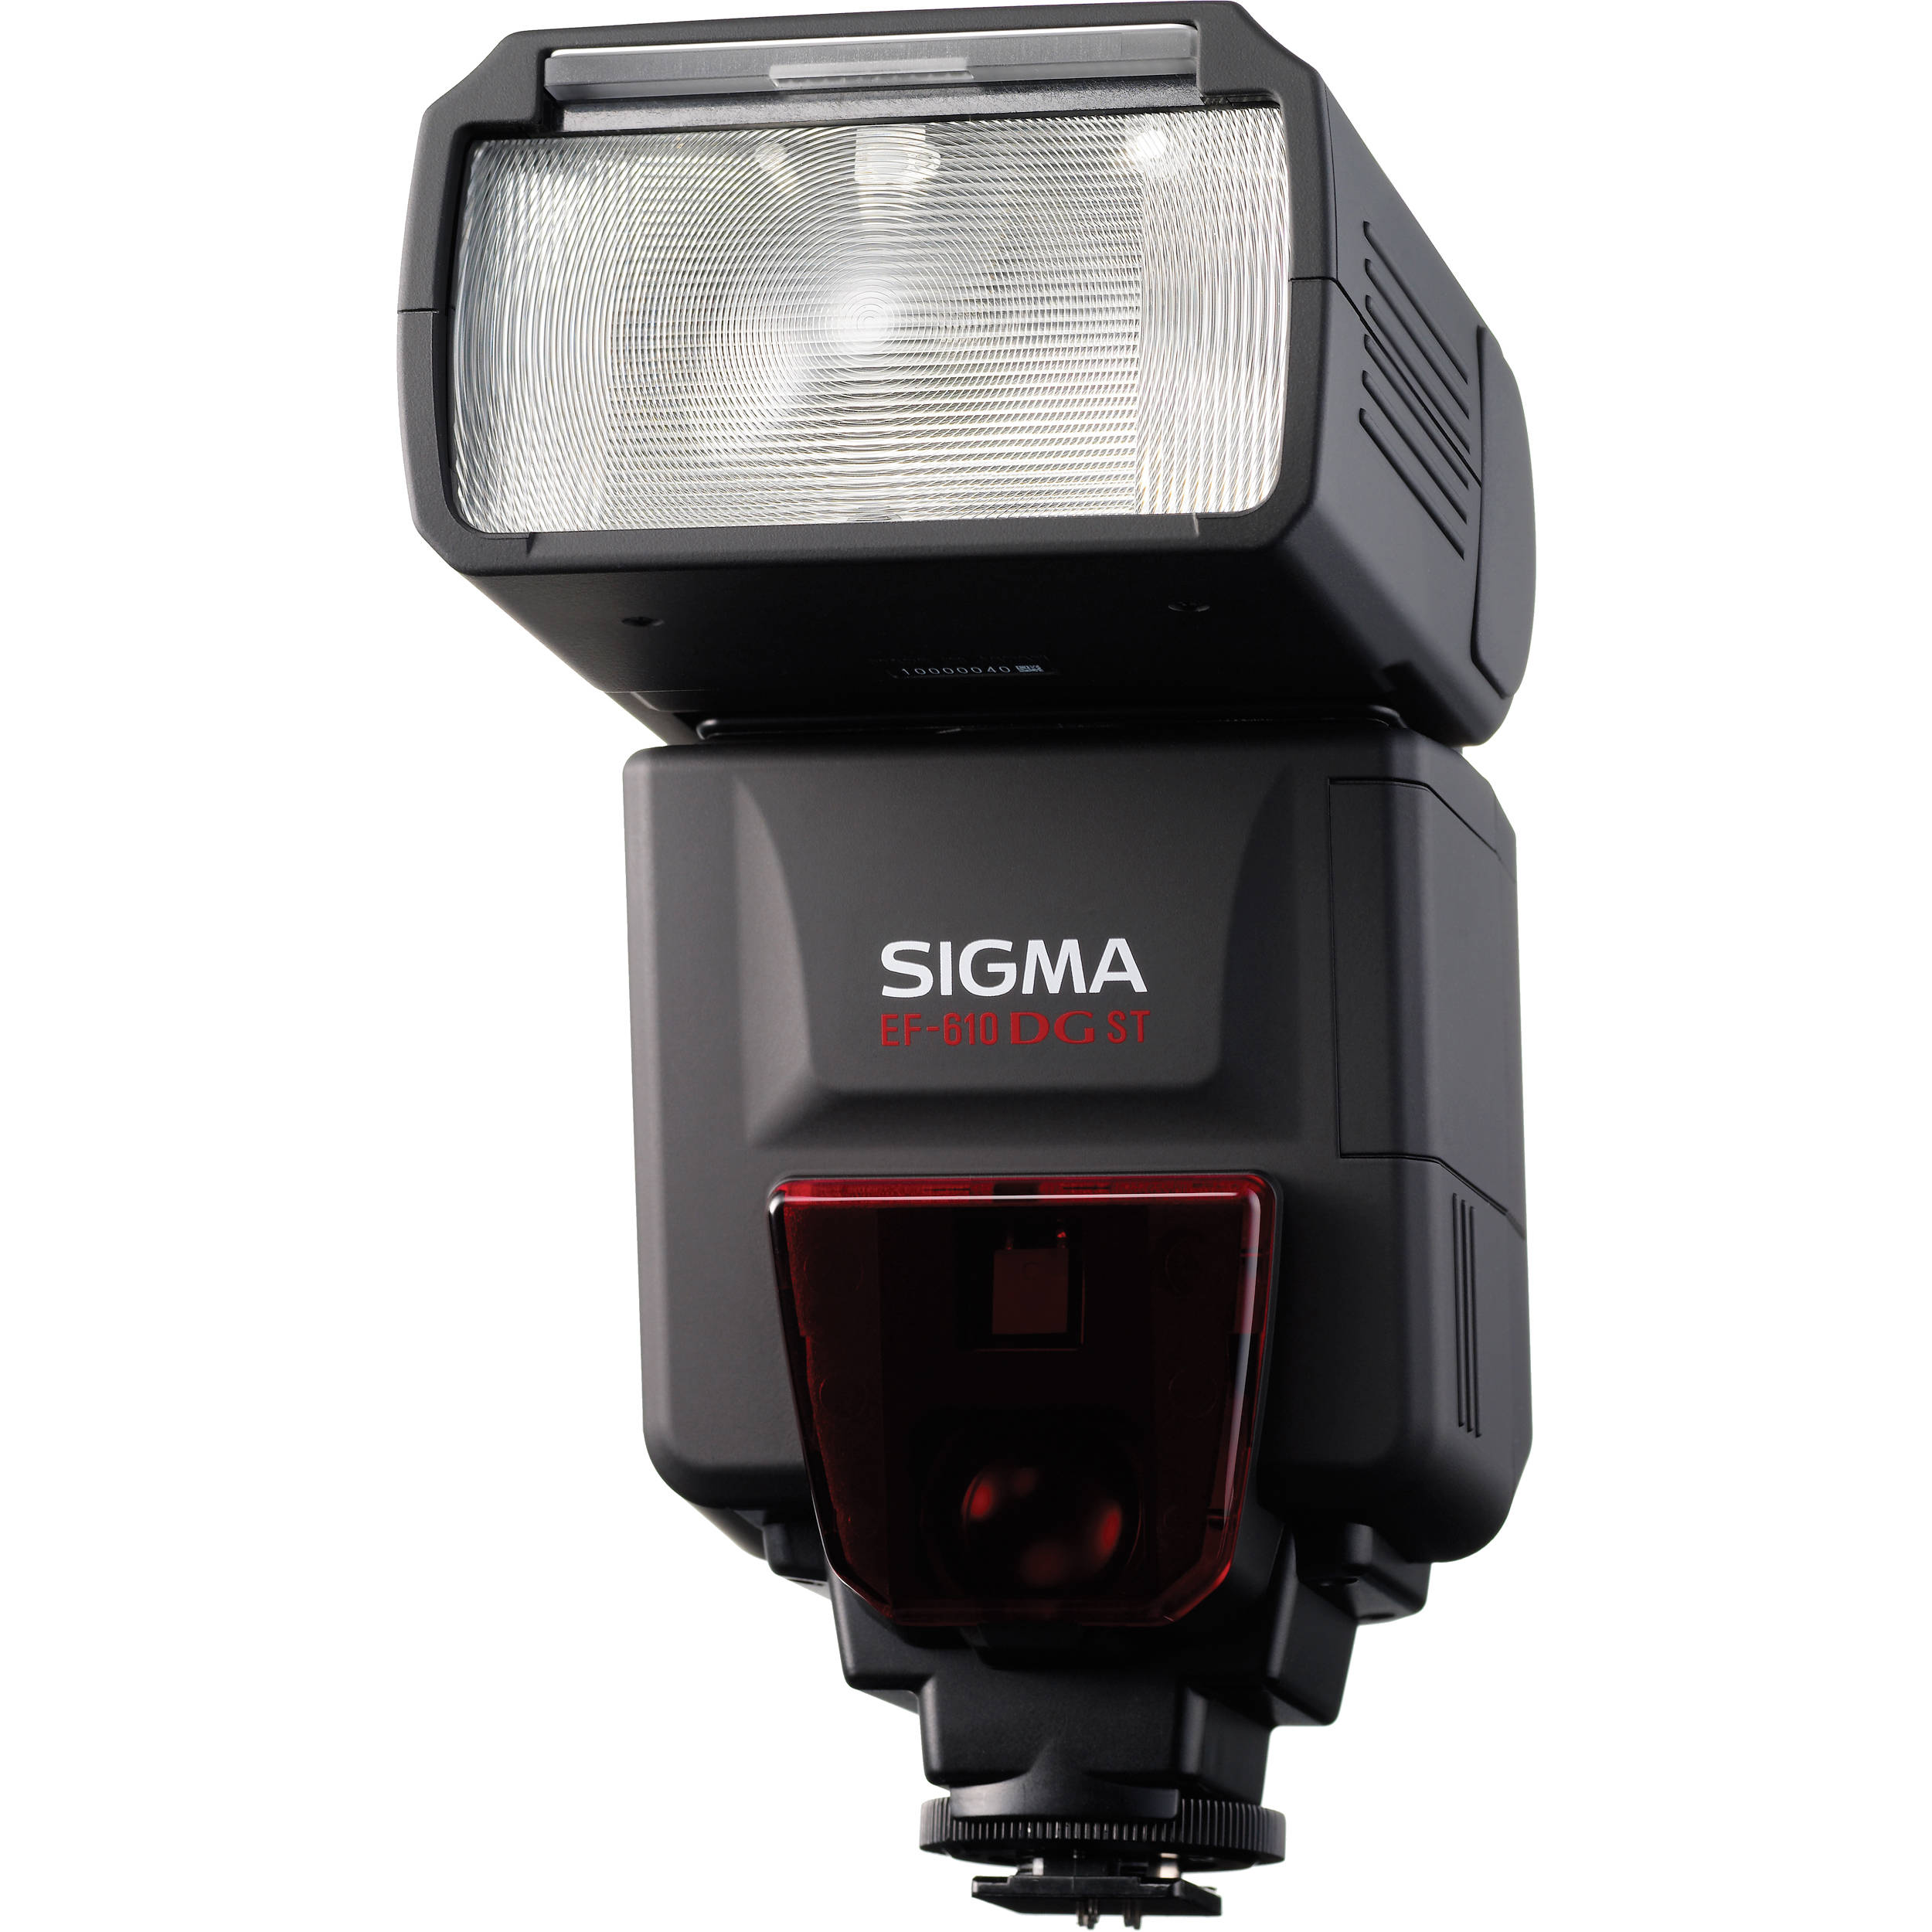 Sigma Ef 610 Dg St Flash For Canon Cameras F19101 B Amp H